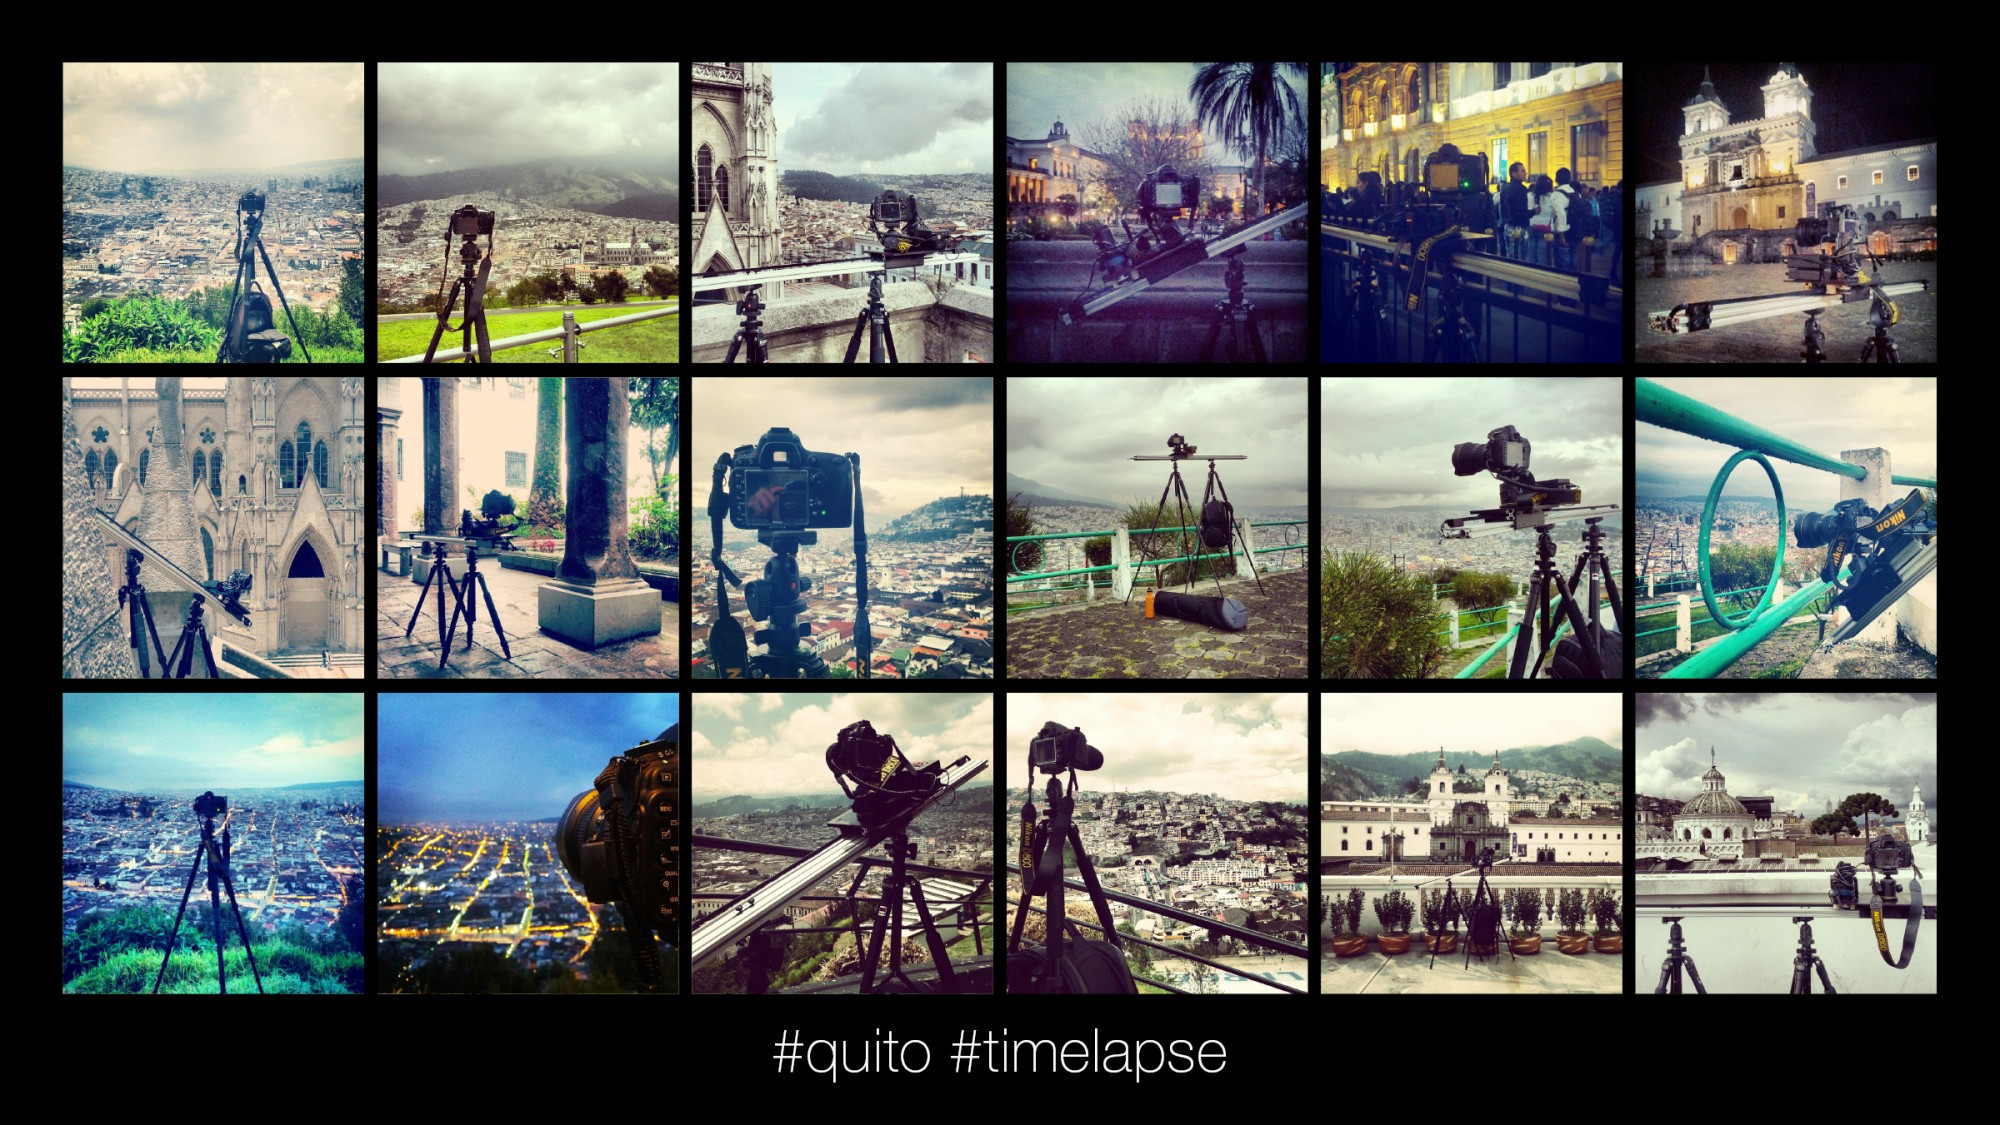 Quito Centro Historico_Site Analysis via Motion-controlled Timelapse Photography